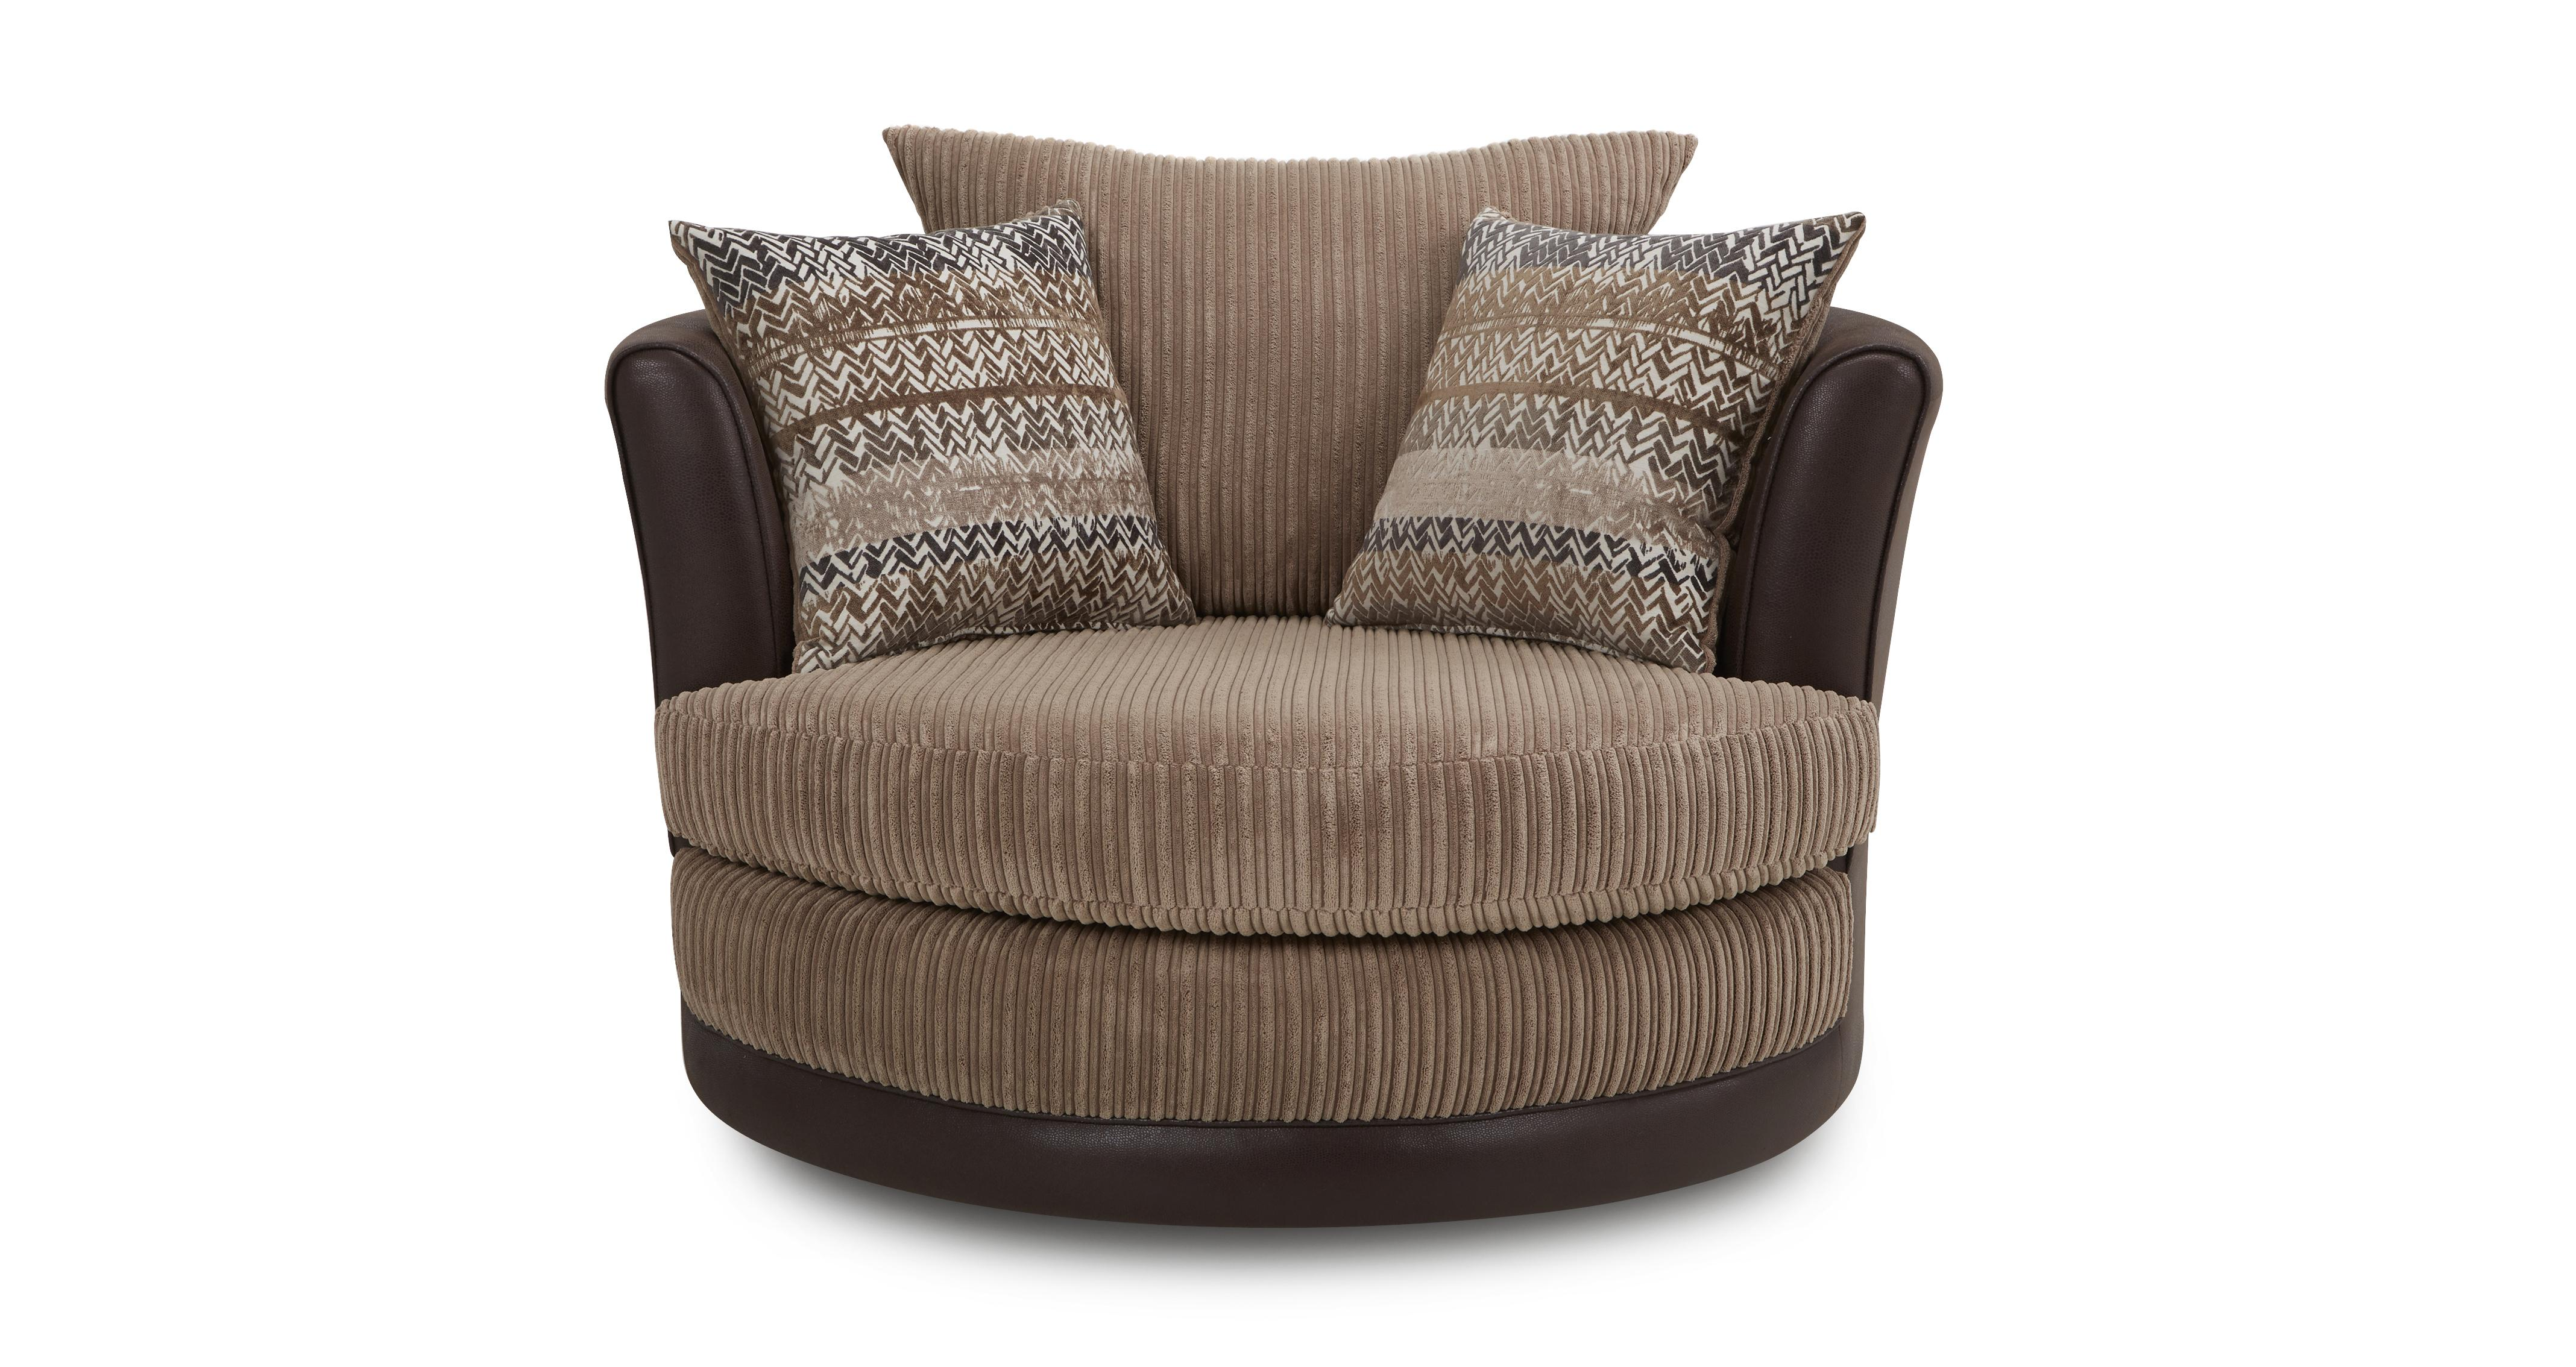 Outdoor Snuggle Chair Patio Furniture Loweus Canada With Athens Cuddle Chai